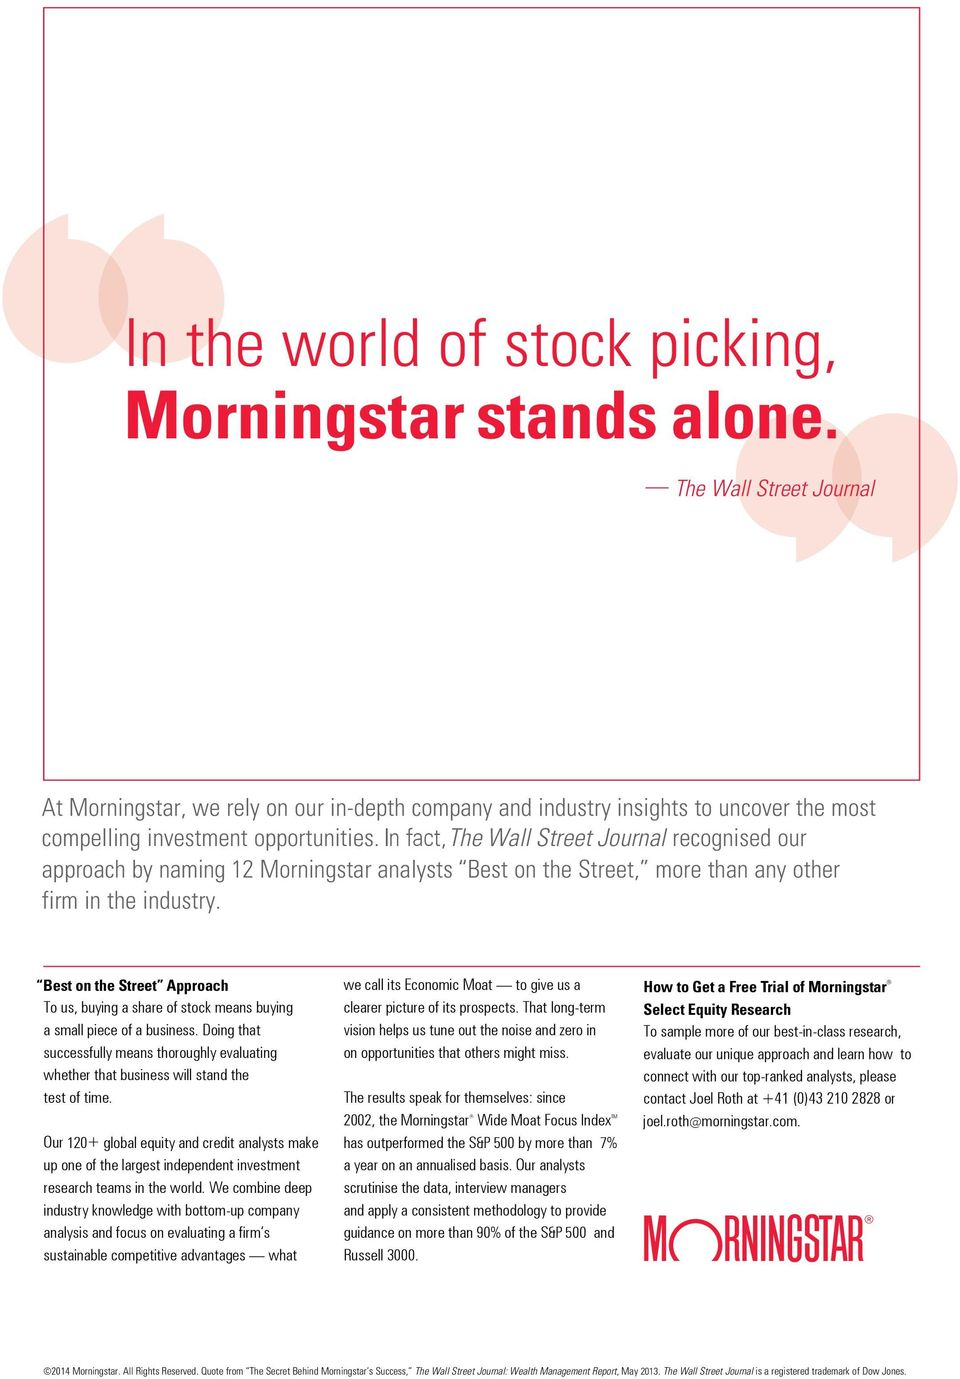 In fact, The Wall Street Journal recognised our approach by naming 12 Morningstar analysts Best on the Street, more than any other firm in the industry.